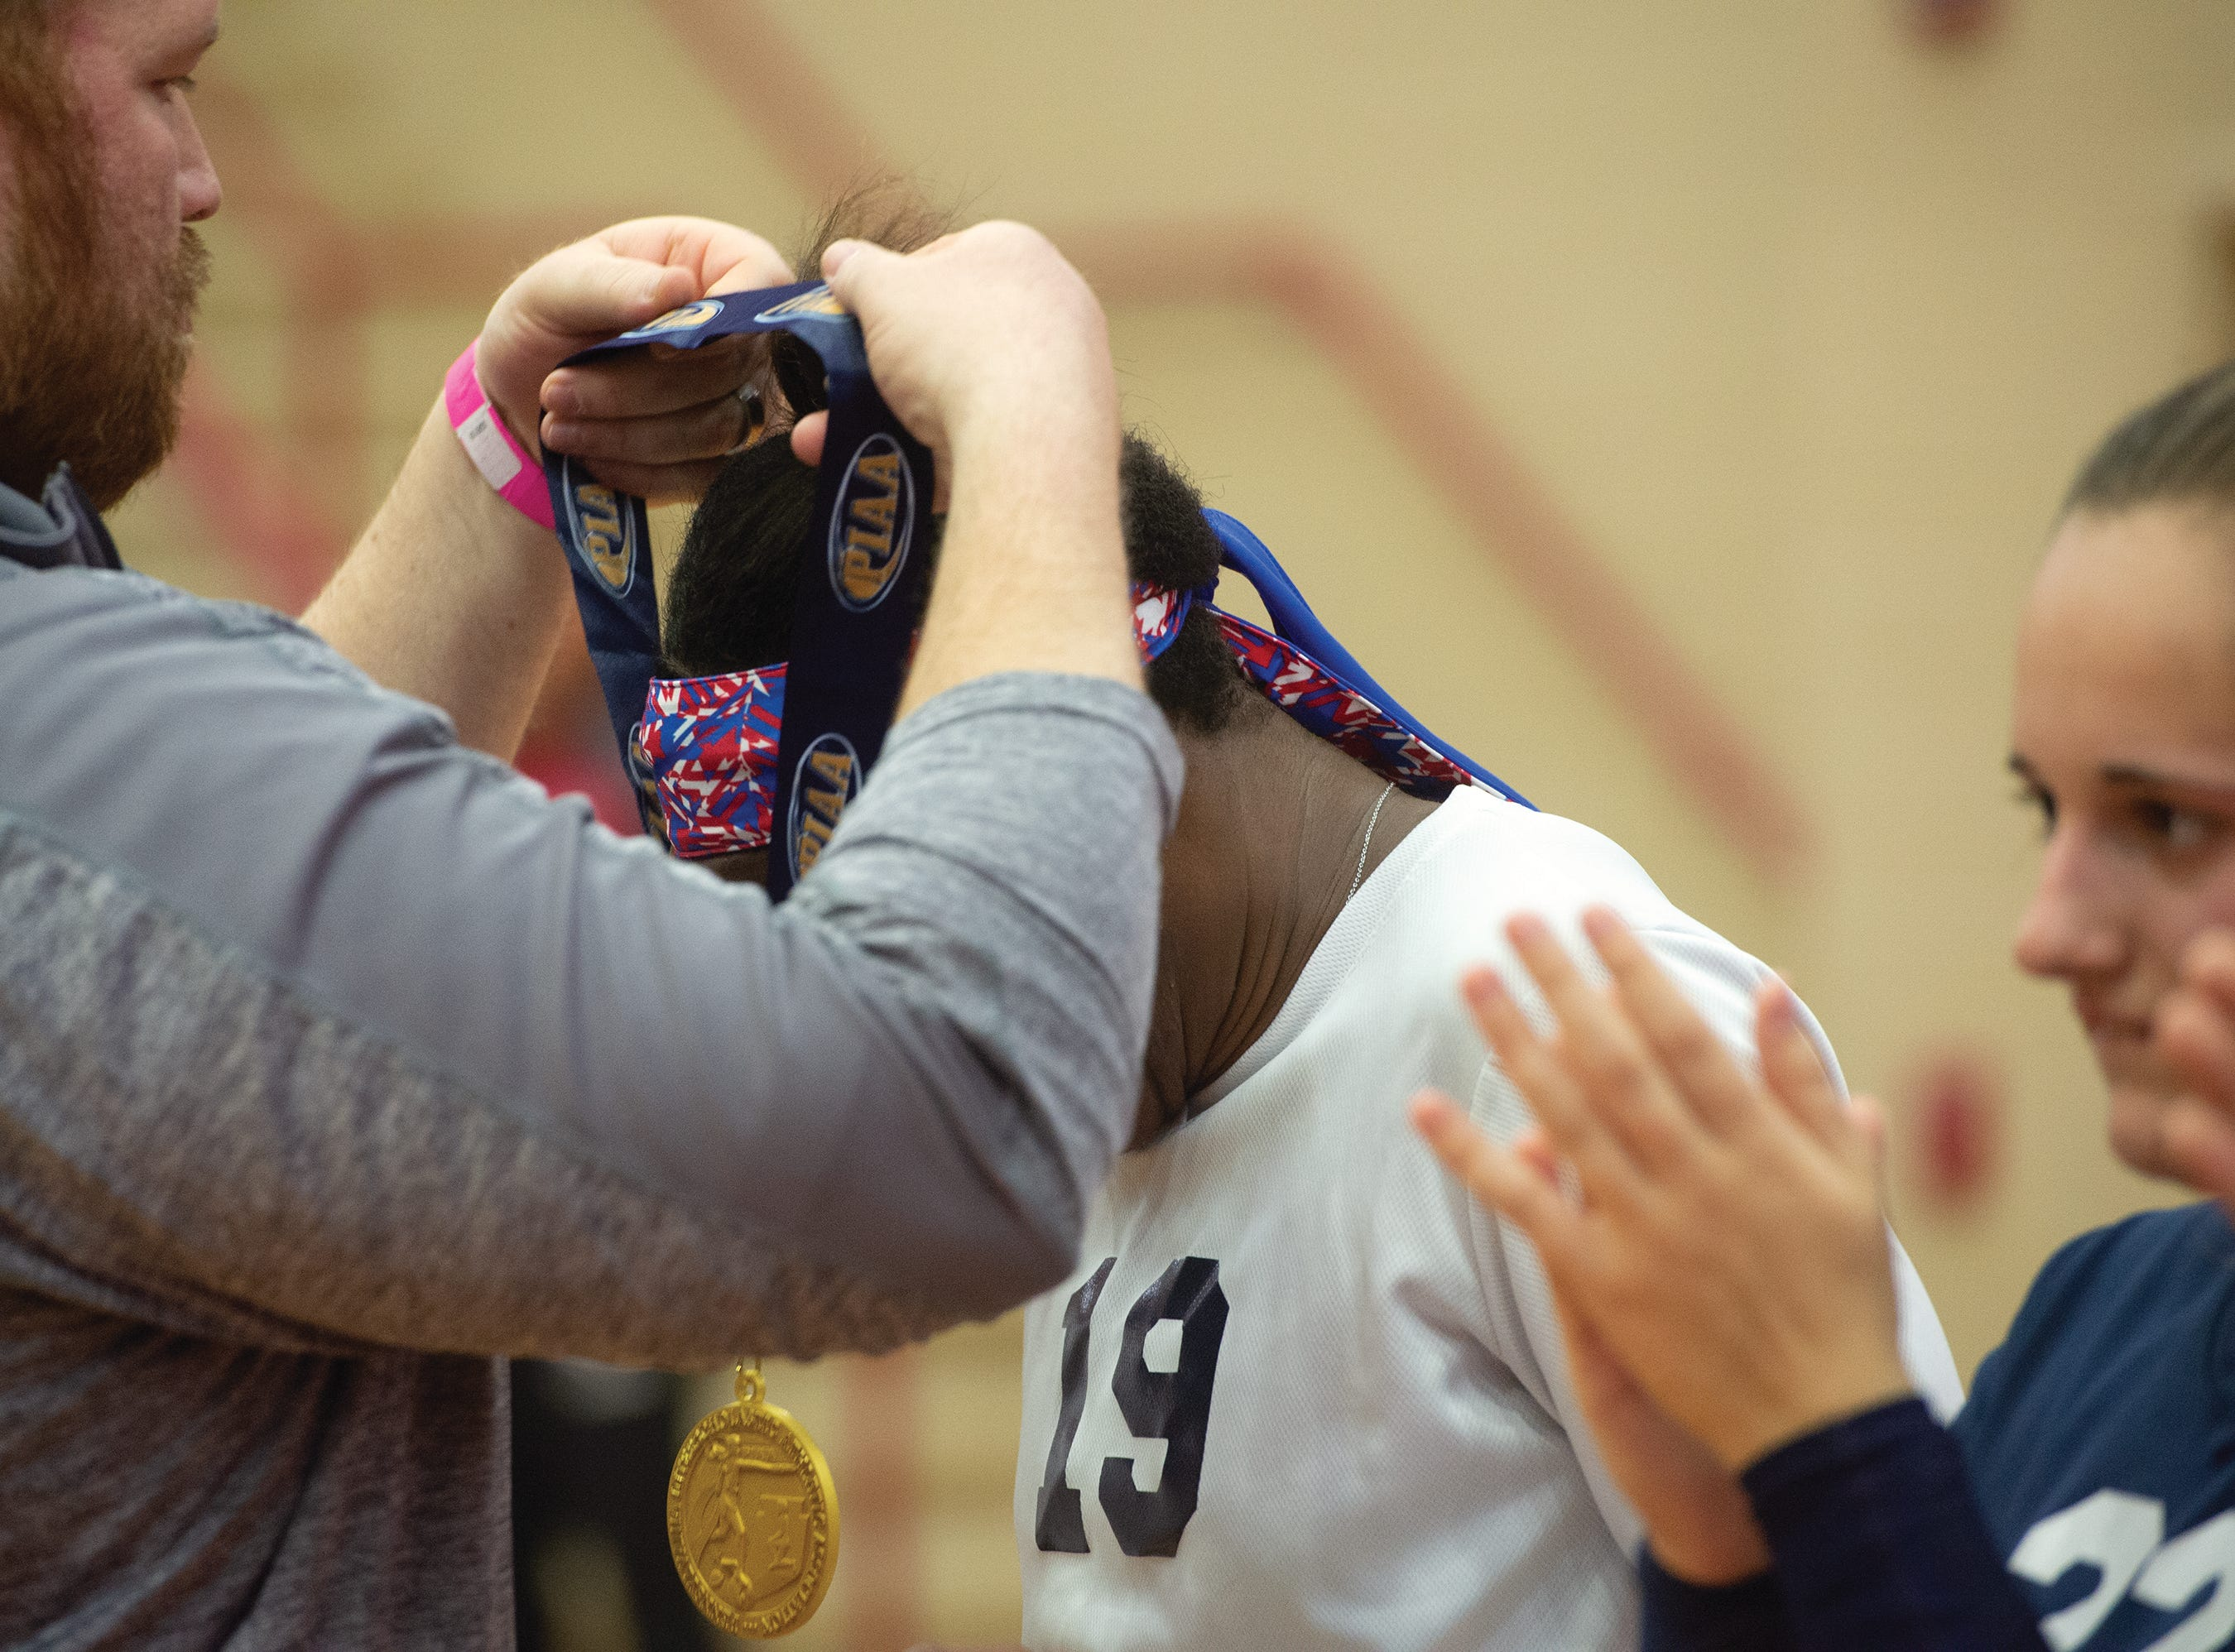 West York coach puts a gold medal around the neck of middle hitter Tesia Thomas. The Bulldogs defeated Warren 3-0 Saturday to win the PIAA Class 3A girls' volleyball title.